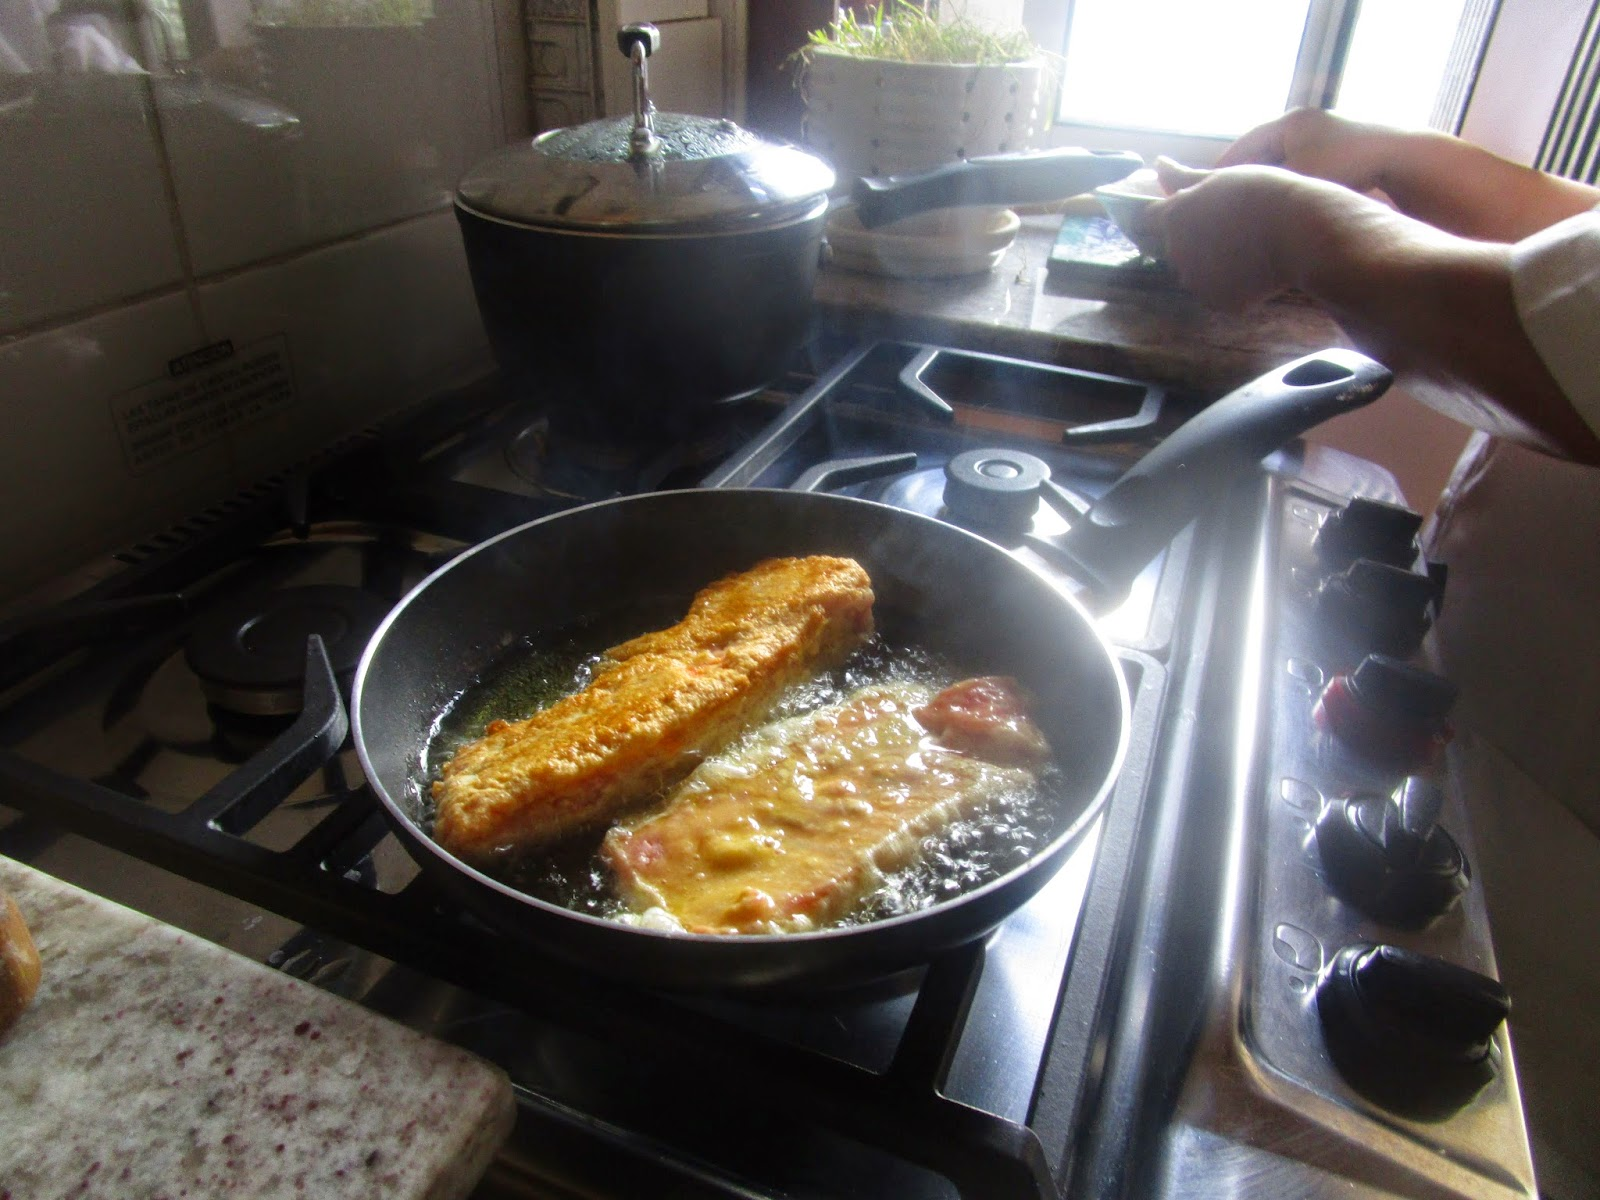 Medieval spanish chef friedura with 13th century recipe for Frying fish in olive oil